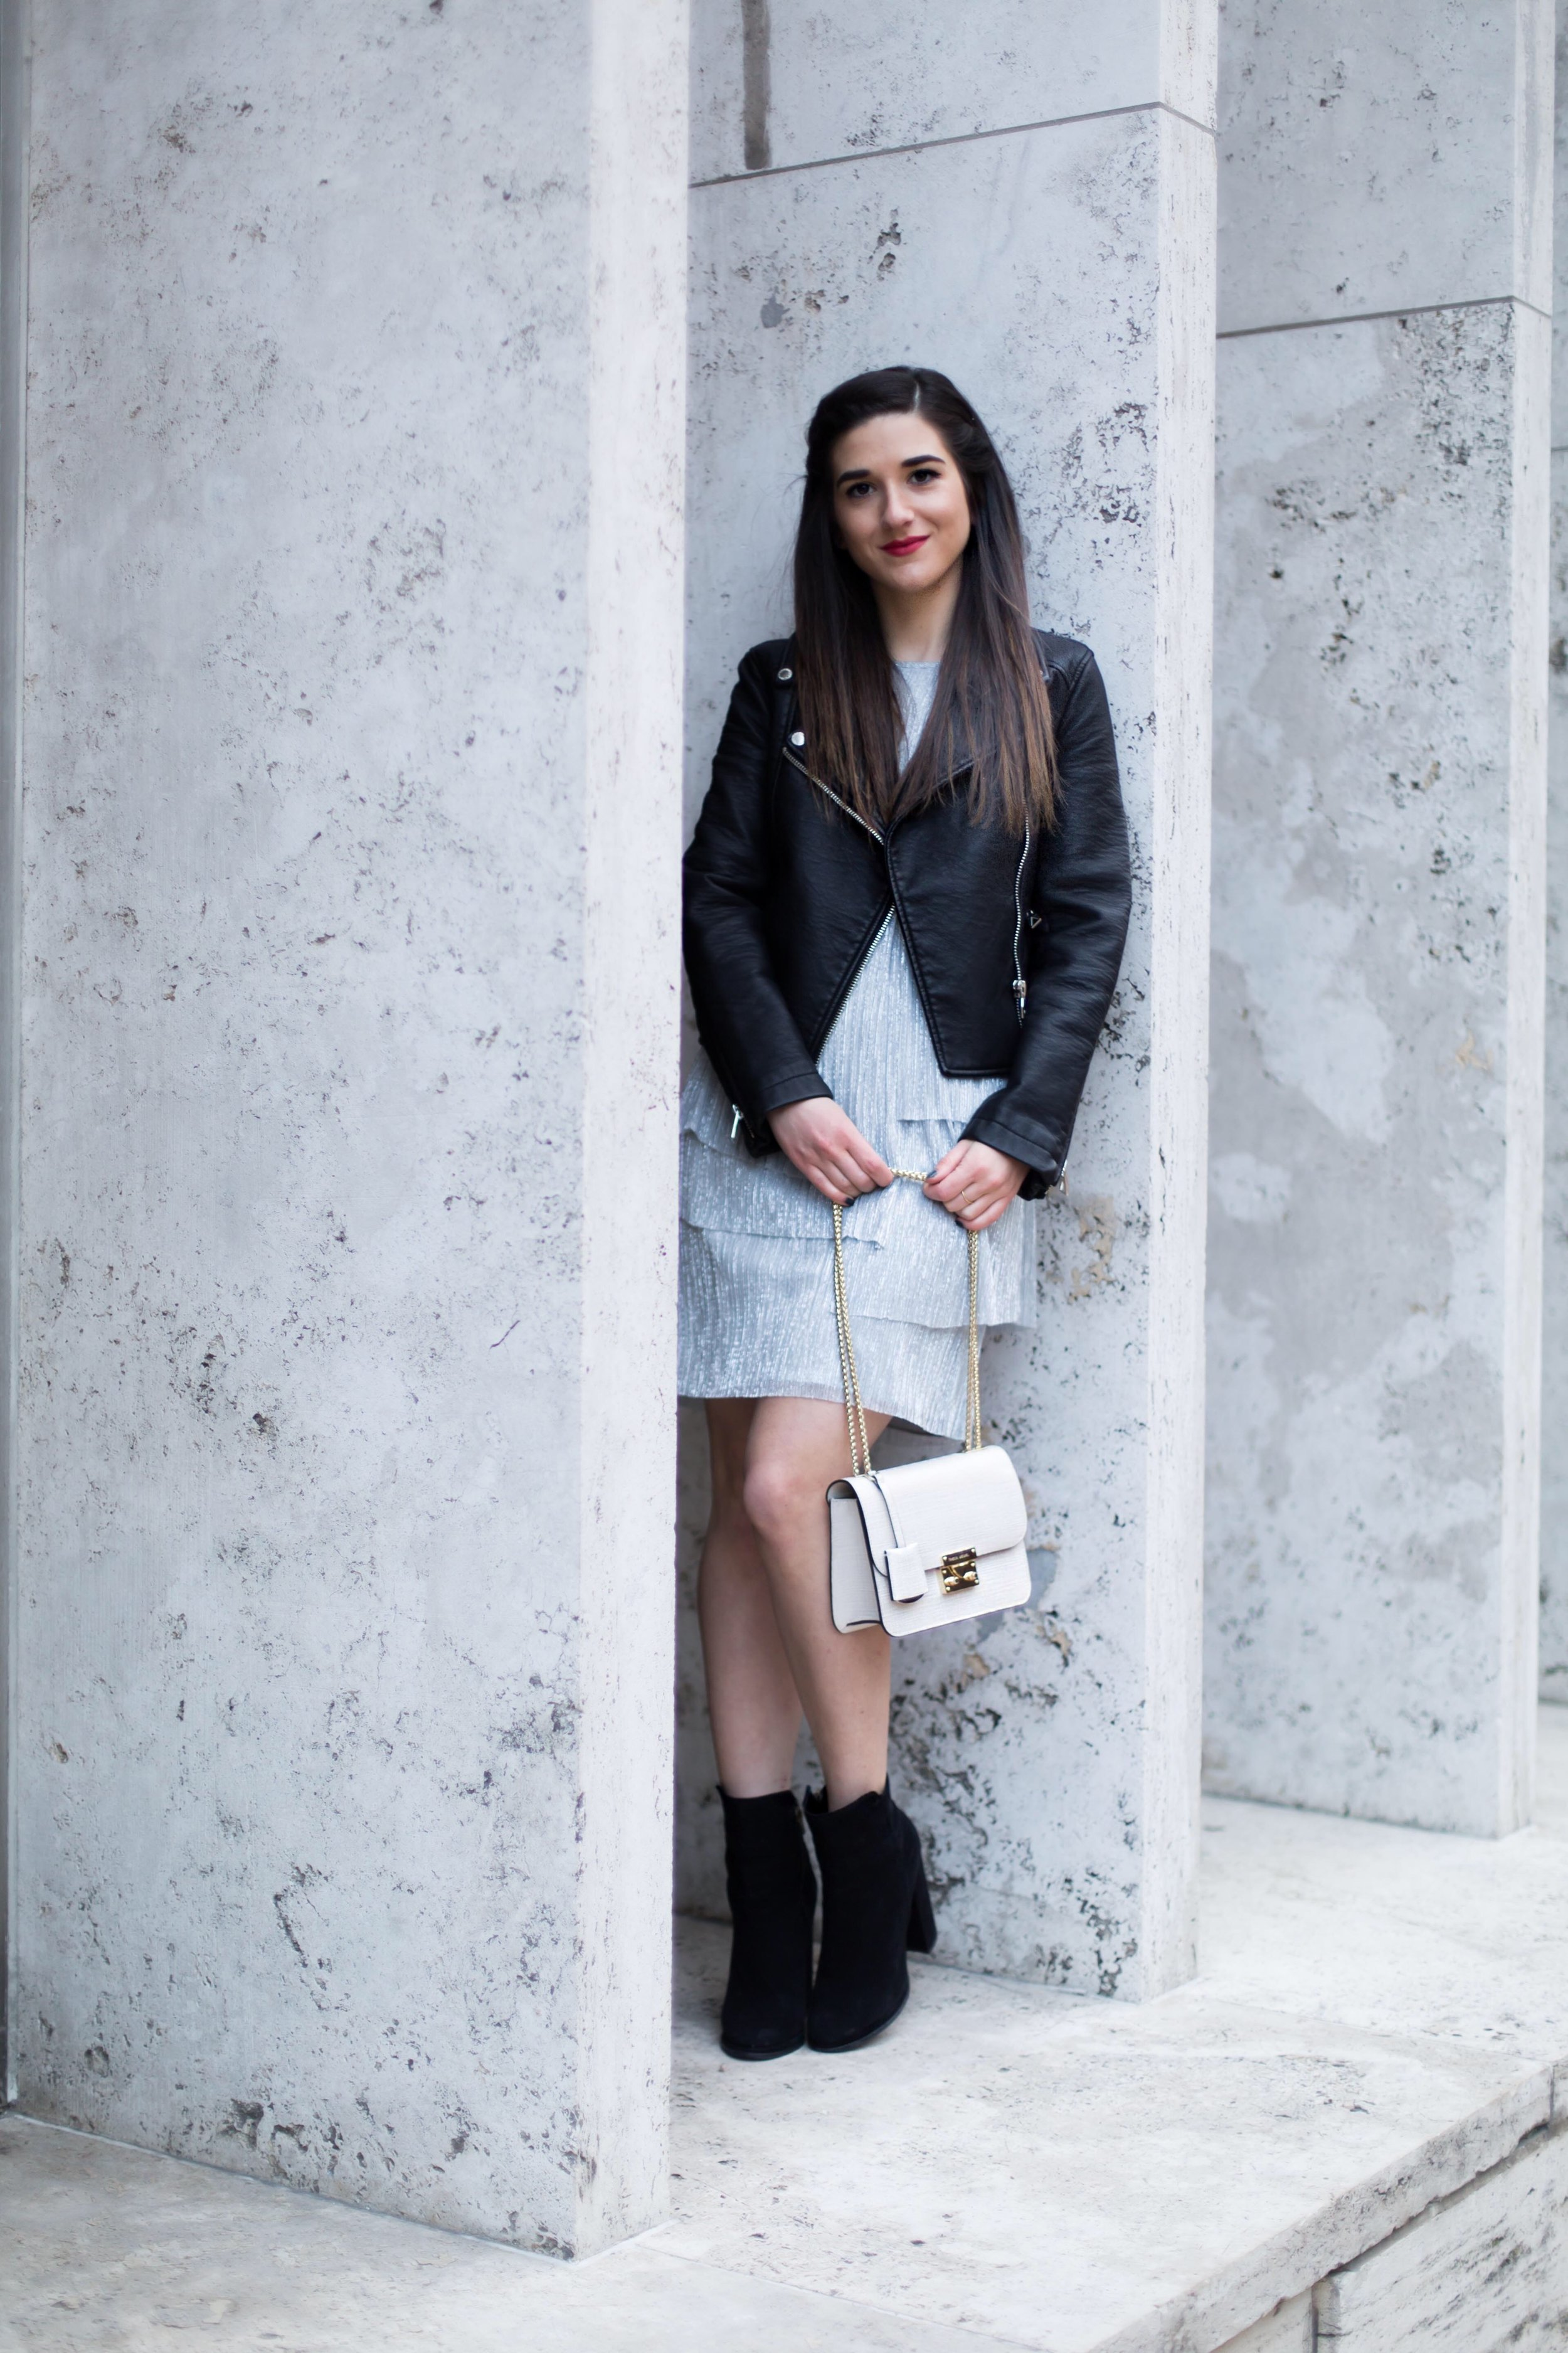 Layered Dress Moto Jacket What Is Your Content Worth Esther Santer Fashion Blog NYC Street Style Blogger Outfit OOTD Trendy Henri Bendel Bag Purse White Gold Jay Godfrey Fancy Casual Look Black Booties Shoes Winter Fall Idea Inspo Shop Wear Girl Woman.JPG